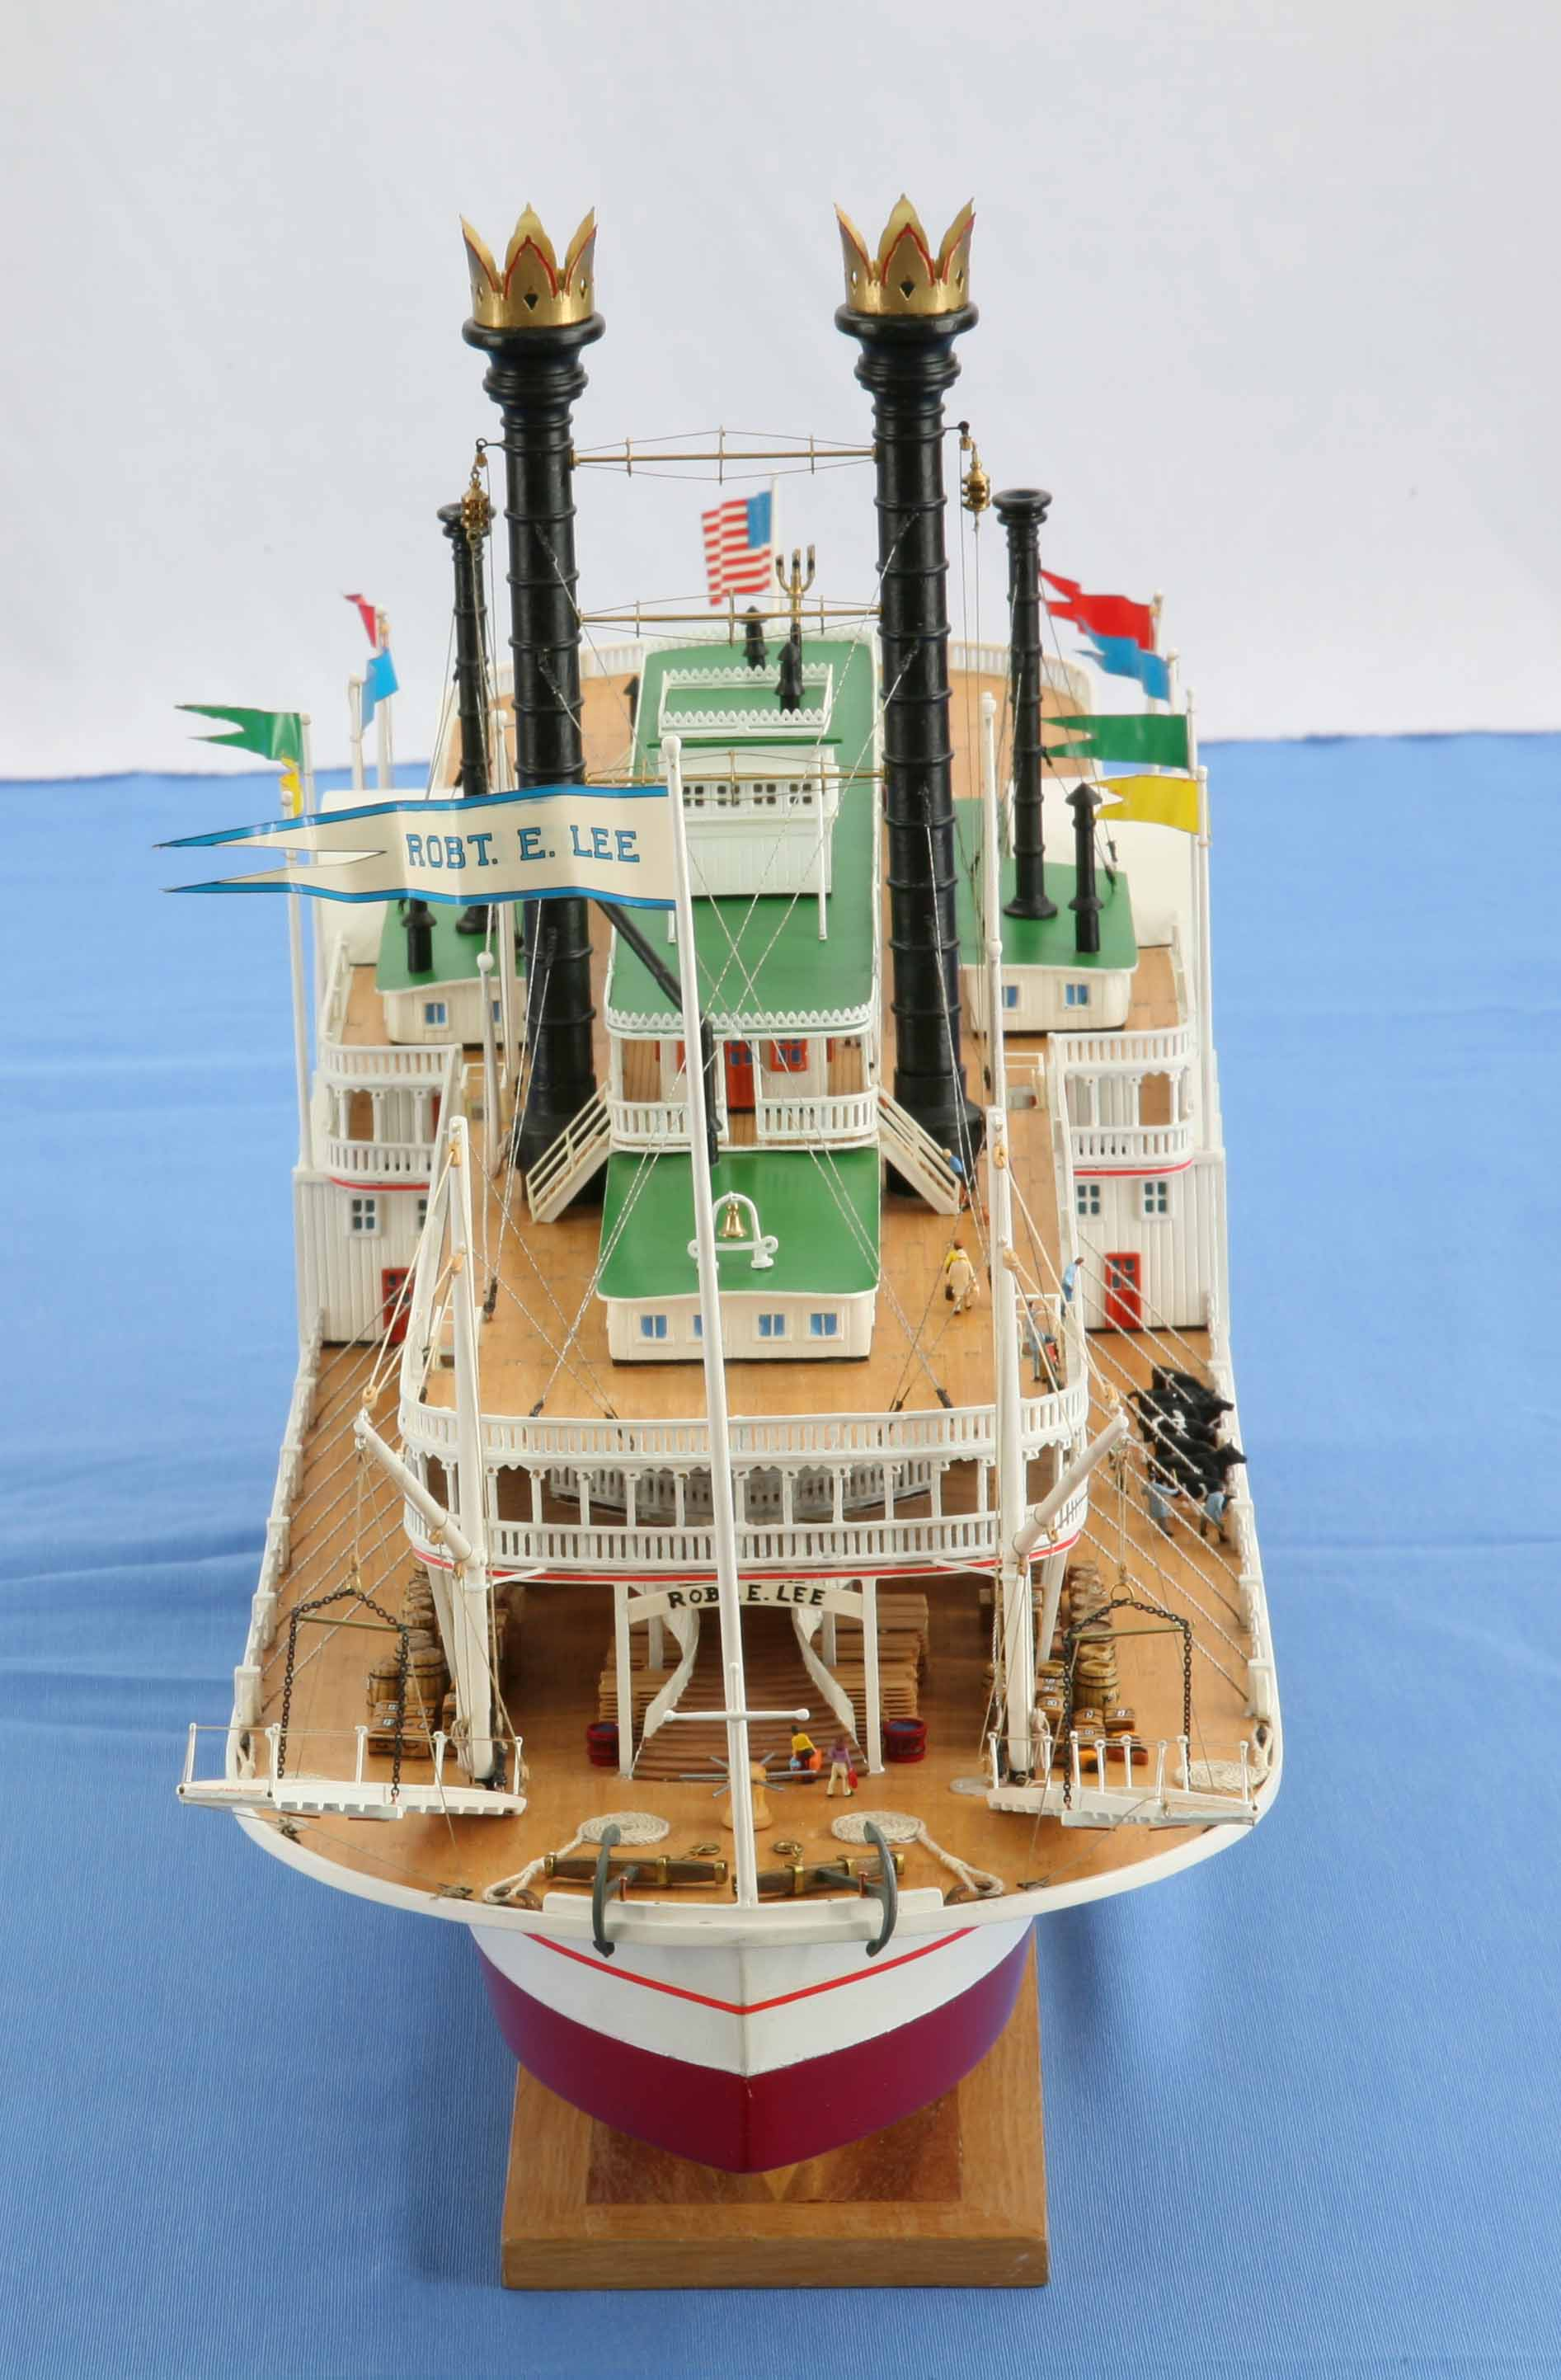 Photos Of Ship Model Mississippi Steamboat Robert E Lee